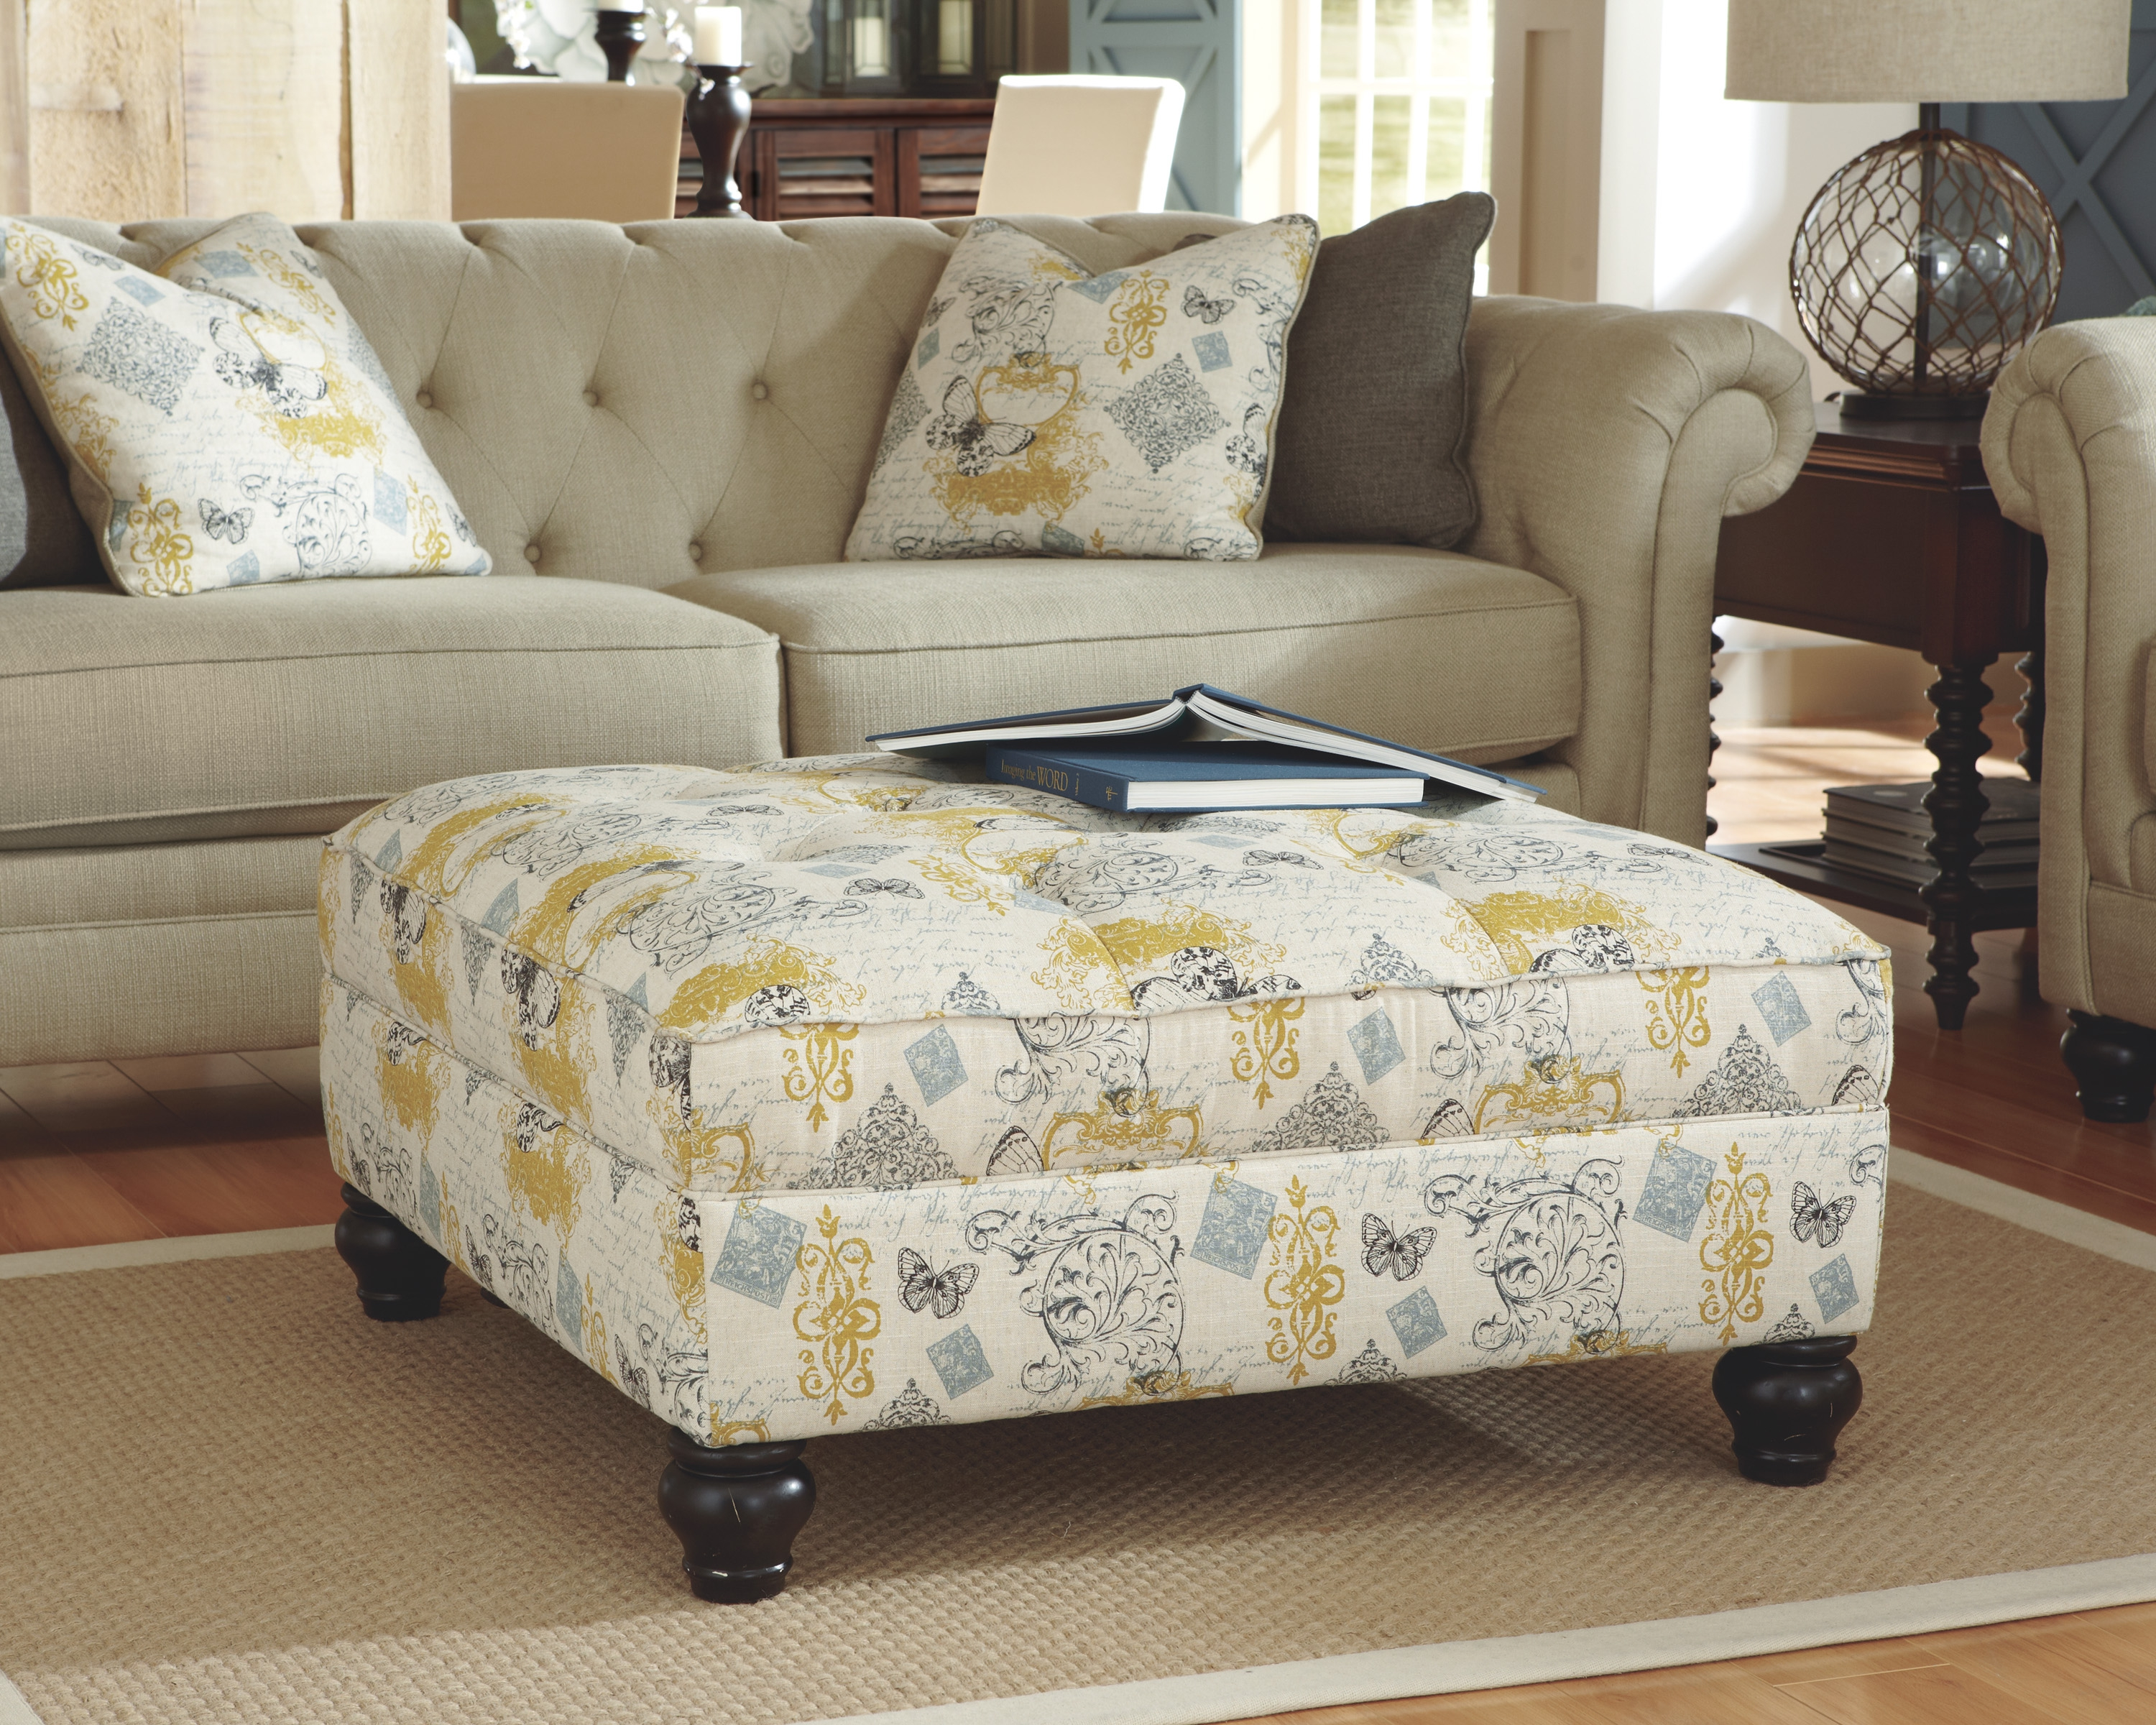 Hindell Park Vintage Casual Putty Oversized Accent Ottoman